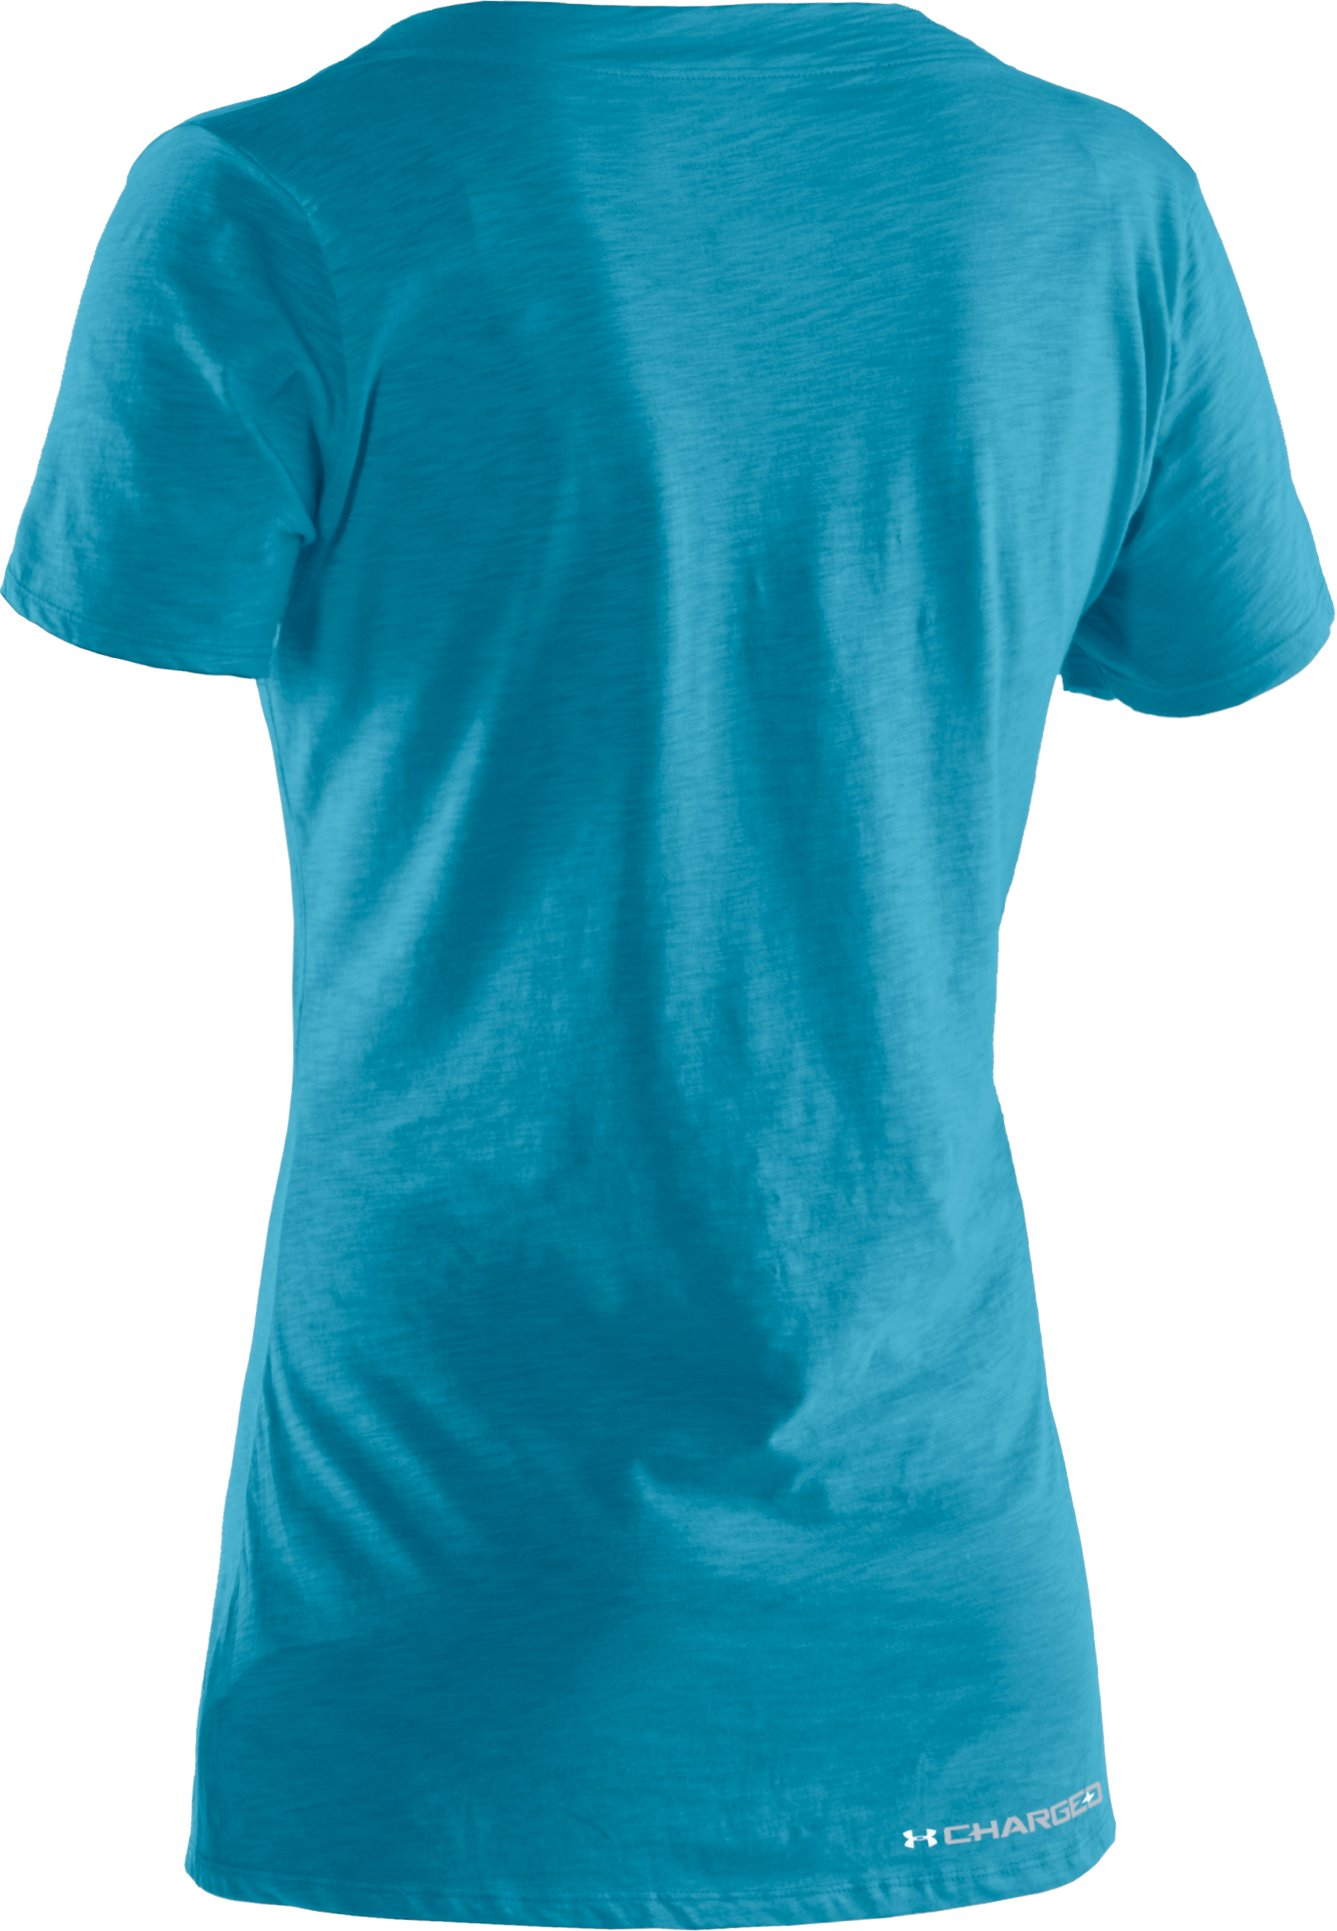 Women's Charged Cotton® Slub T-Shirt, Break